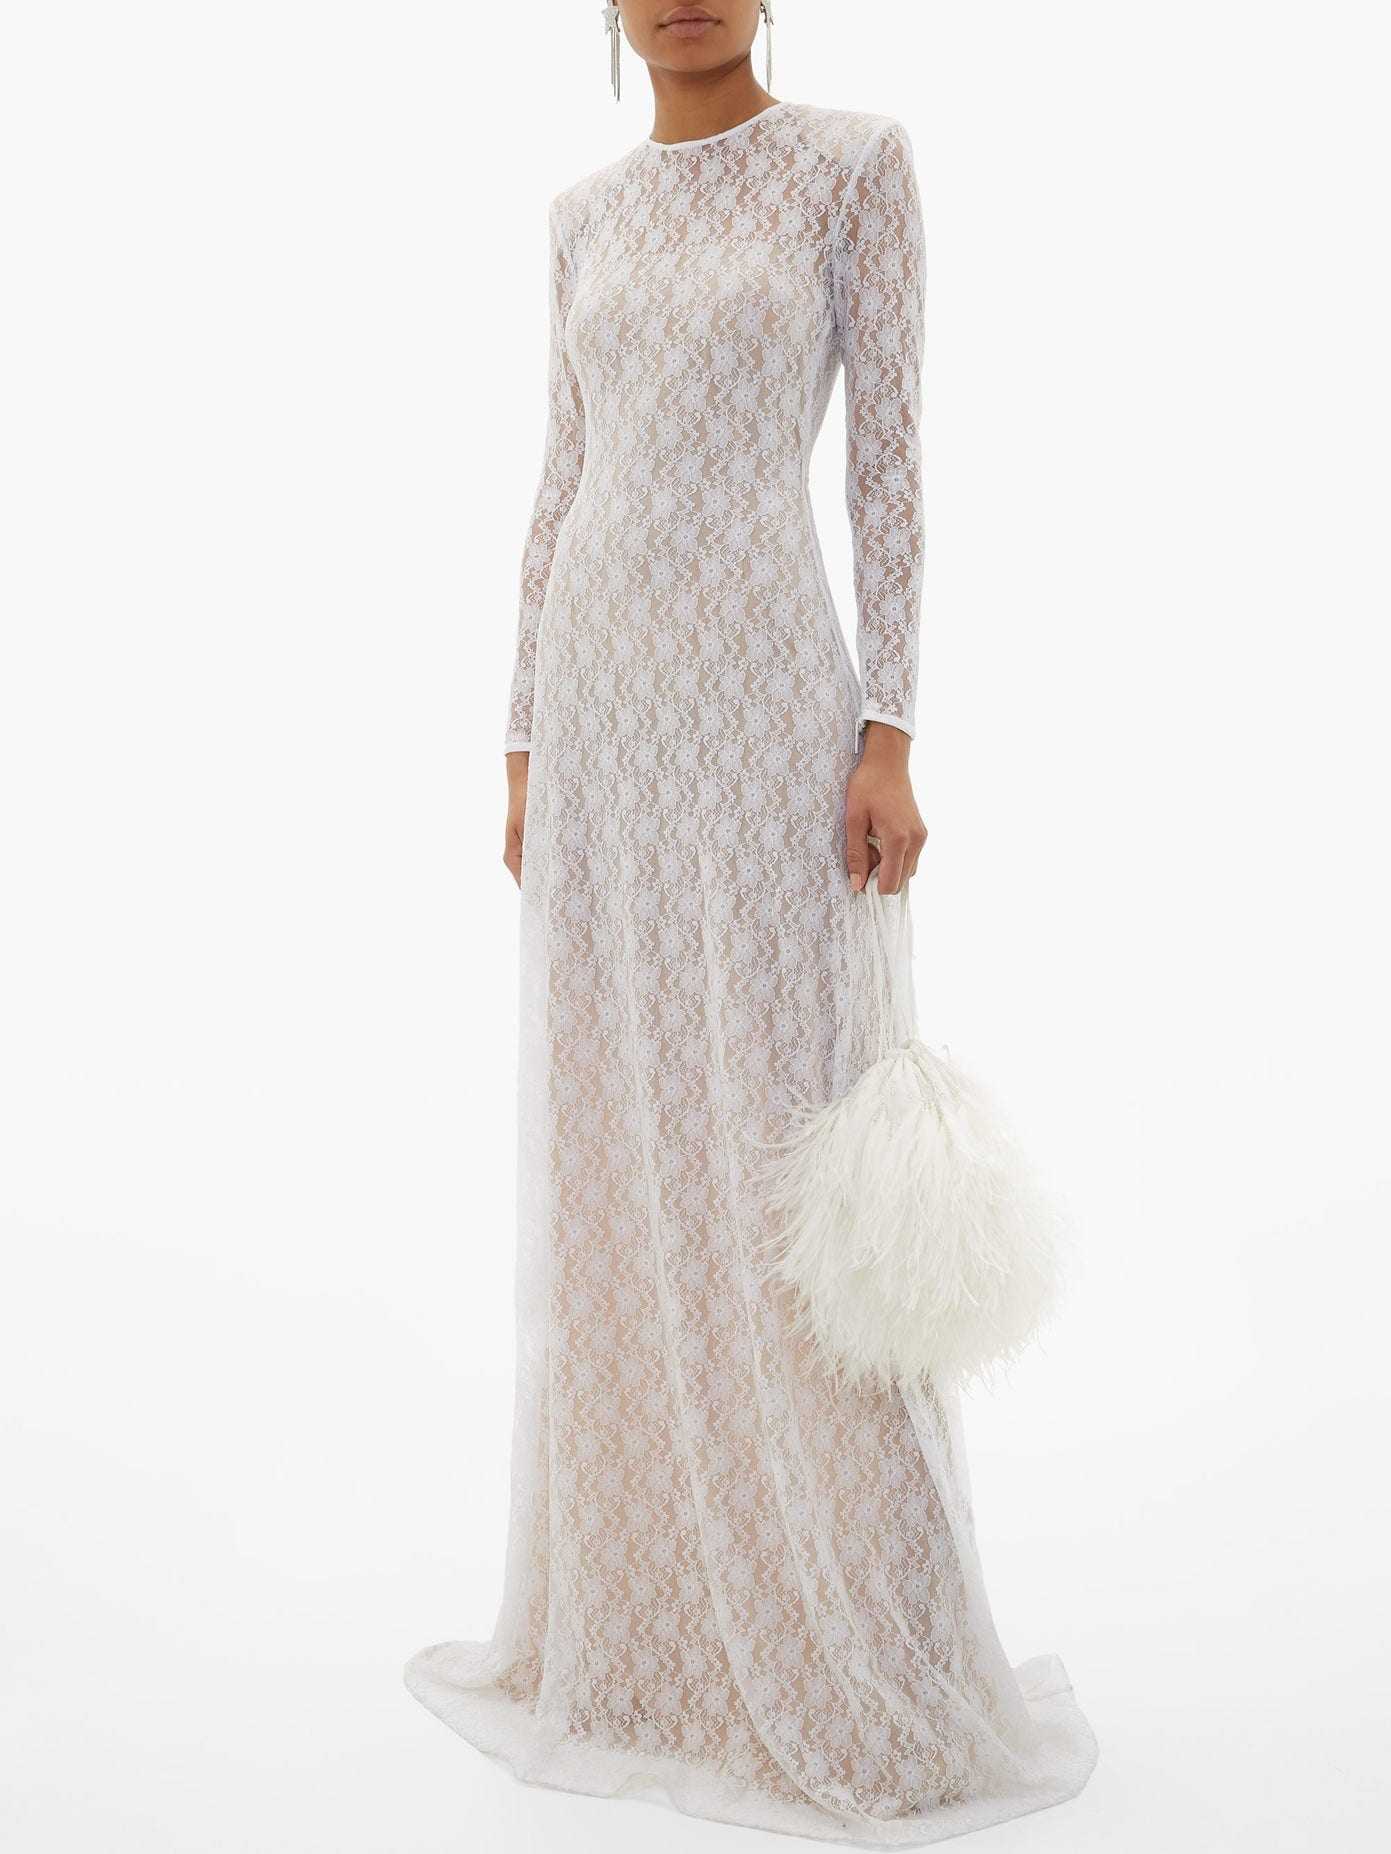 CHRISTOPHER KANE Feather-trimmed Chantilly-lace Gown